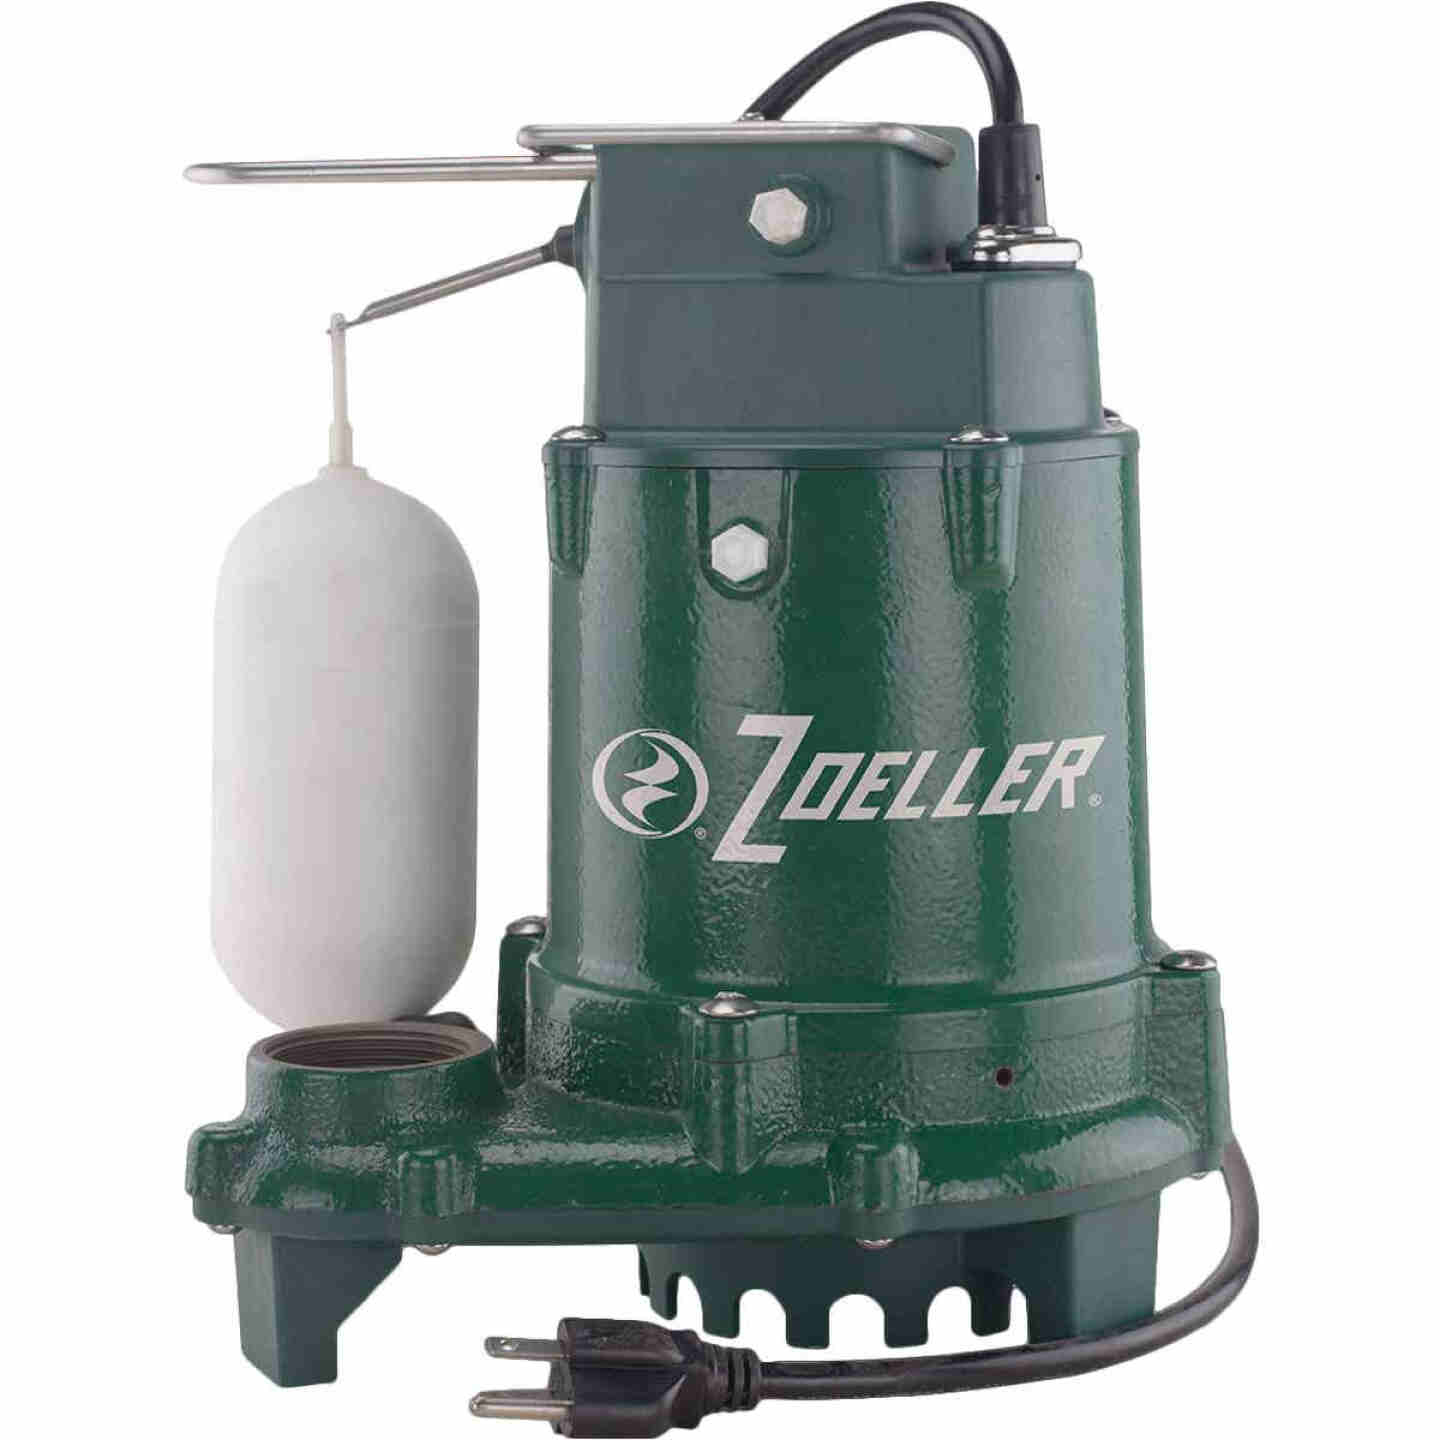 Zoeller 1/3 HP Pro 115V Cast Iron Submersible Sump Pump Image 1